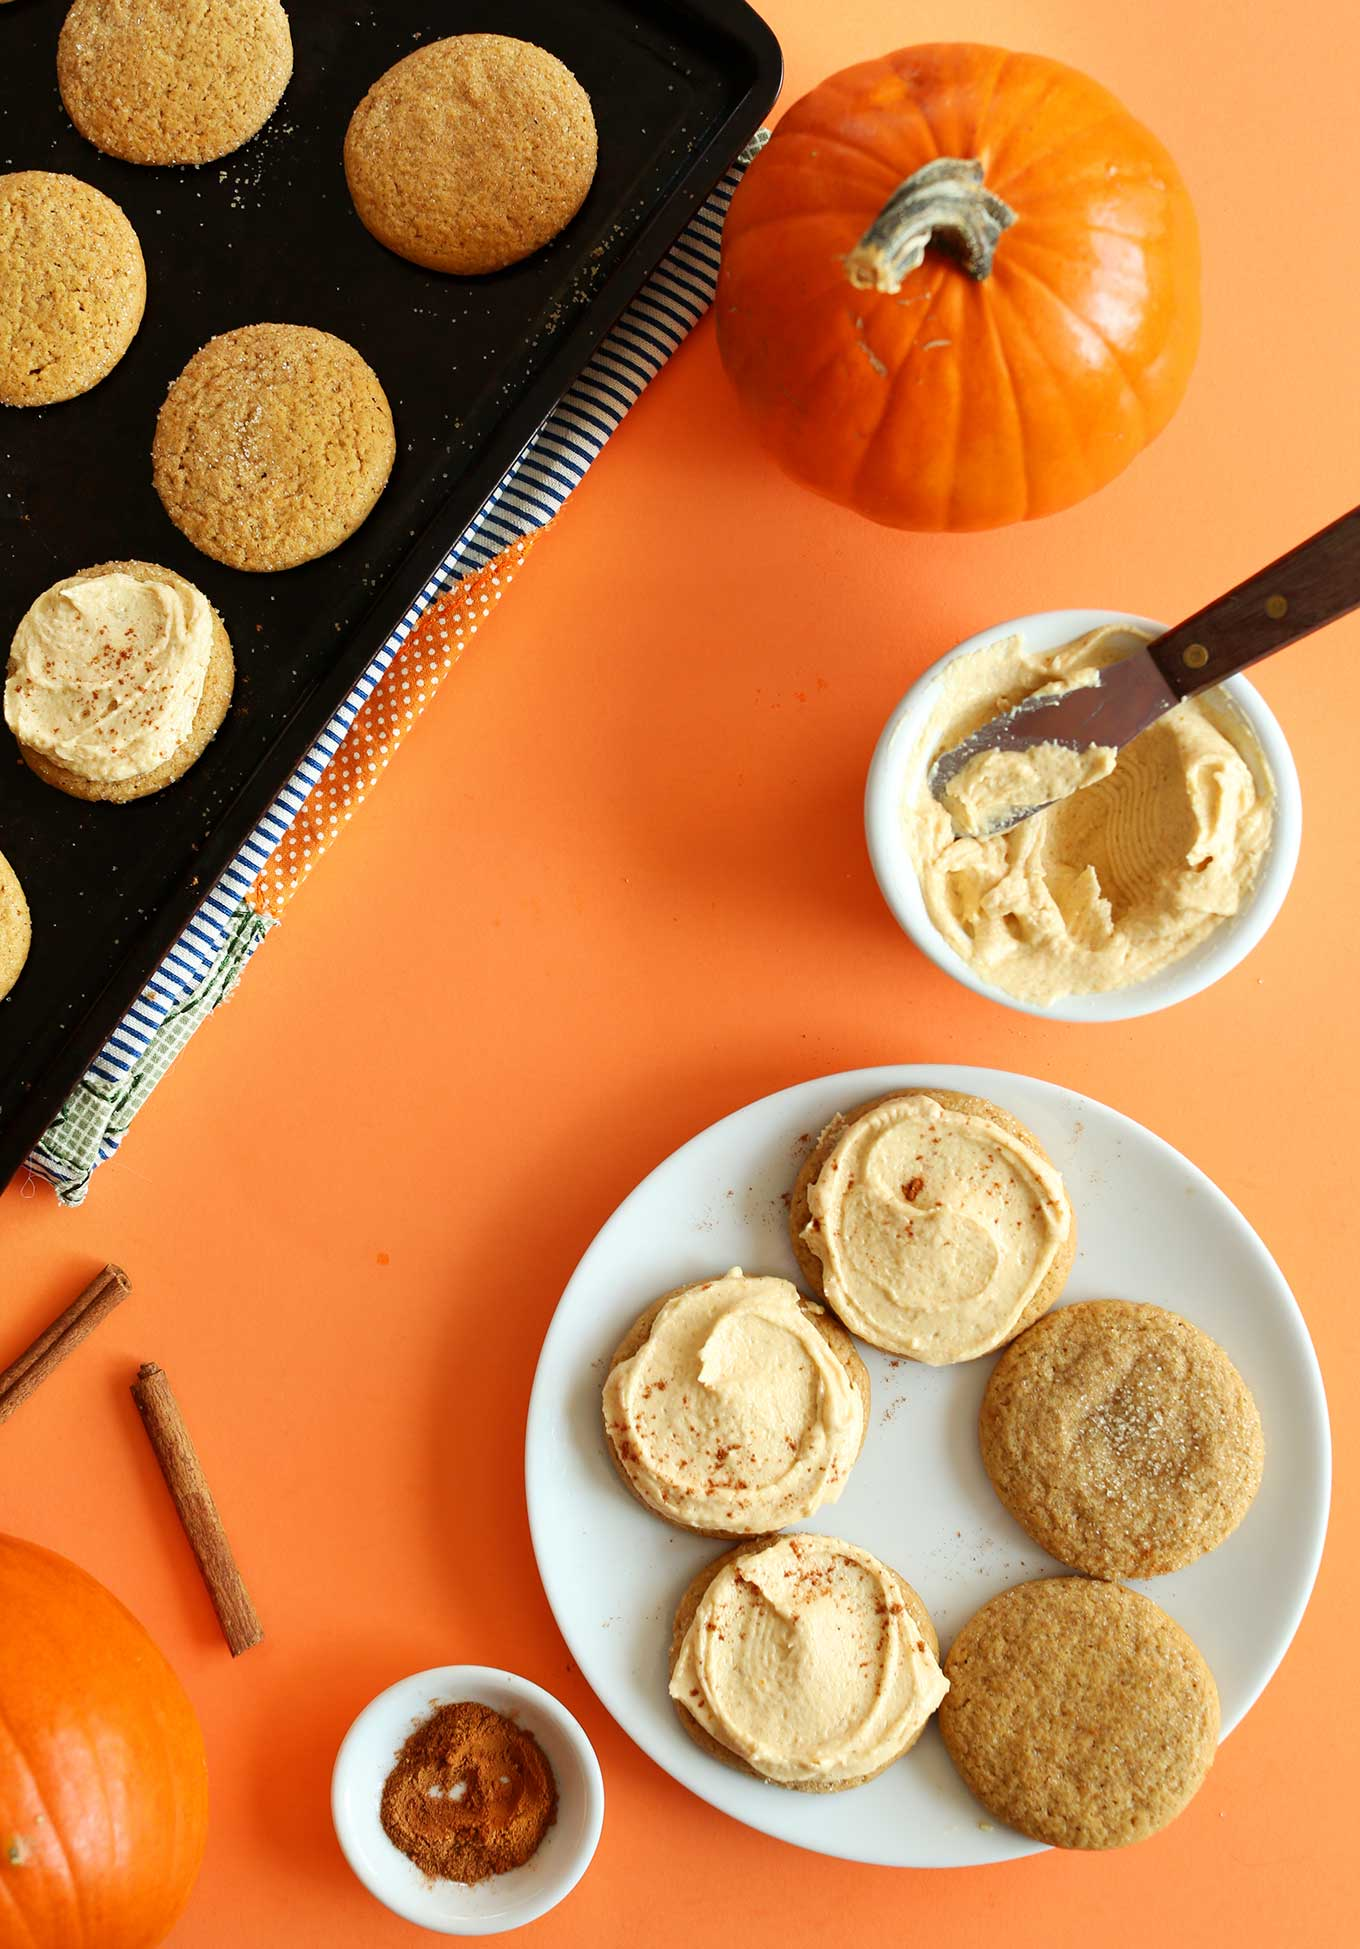 Plate and baking sheet with a partially-frosted batch of homemade Vegan Pumpkin Sugar Cookies